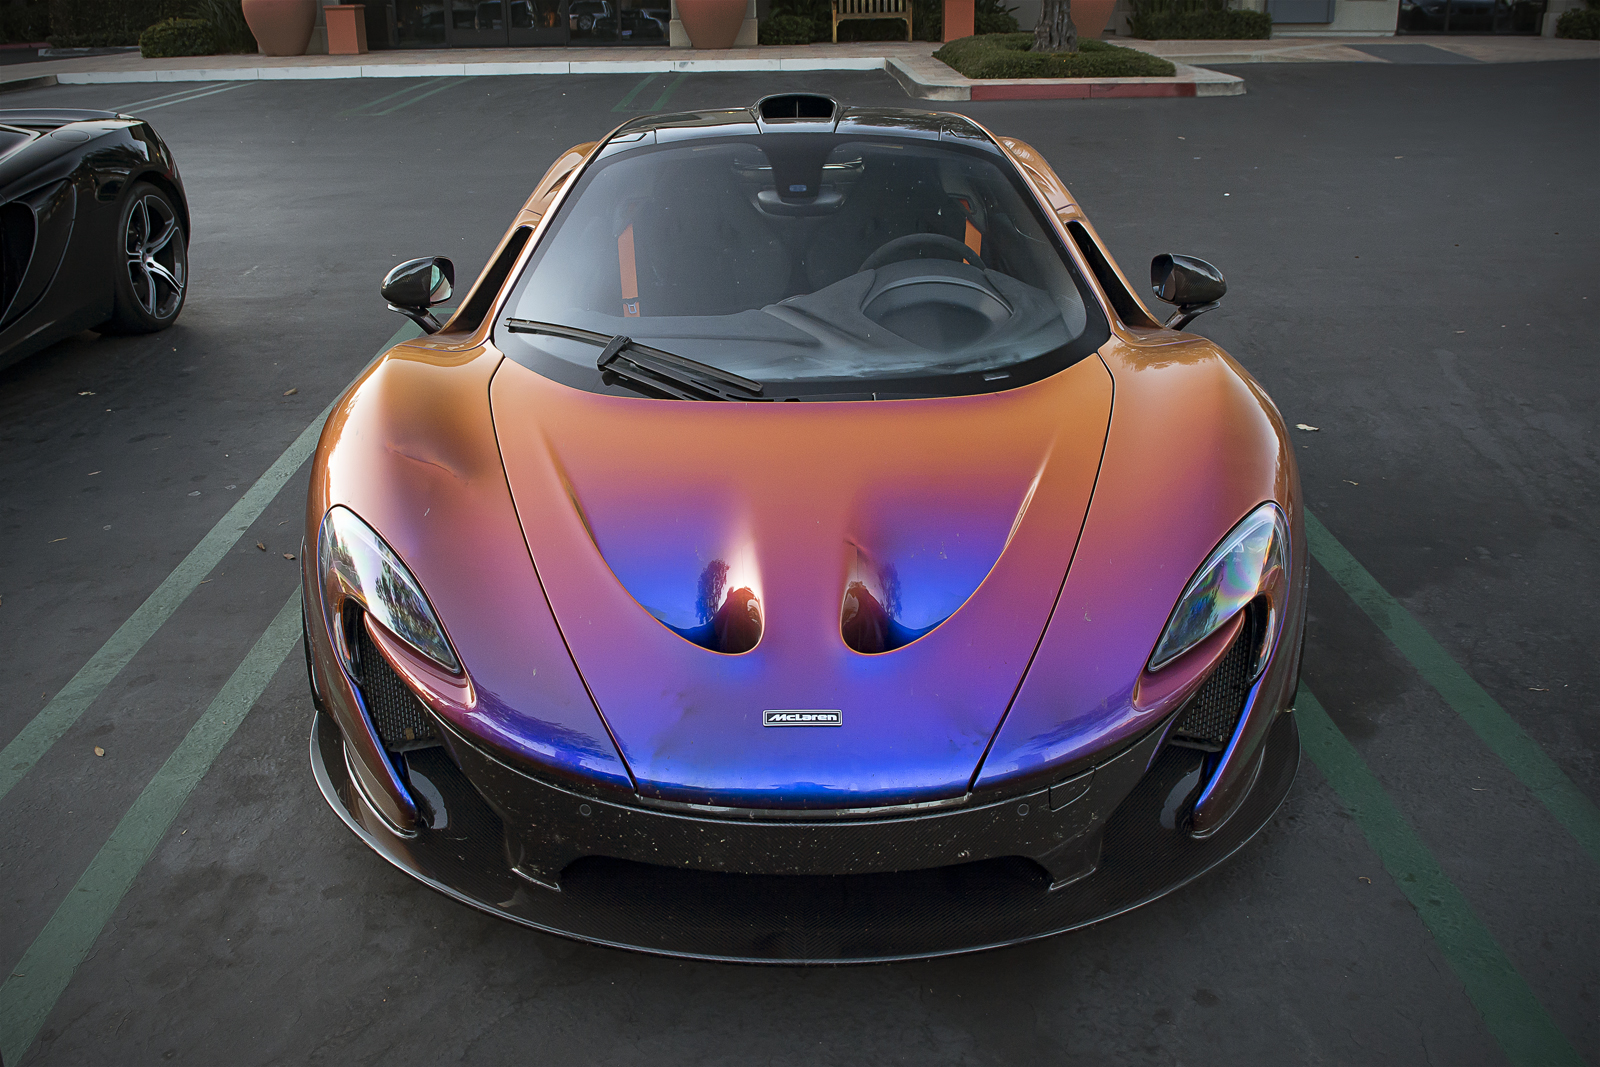 Color car los angeles - Cj Wilson Mclaren P1